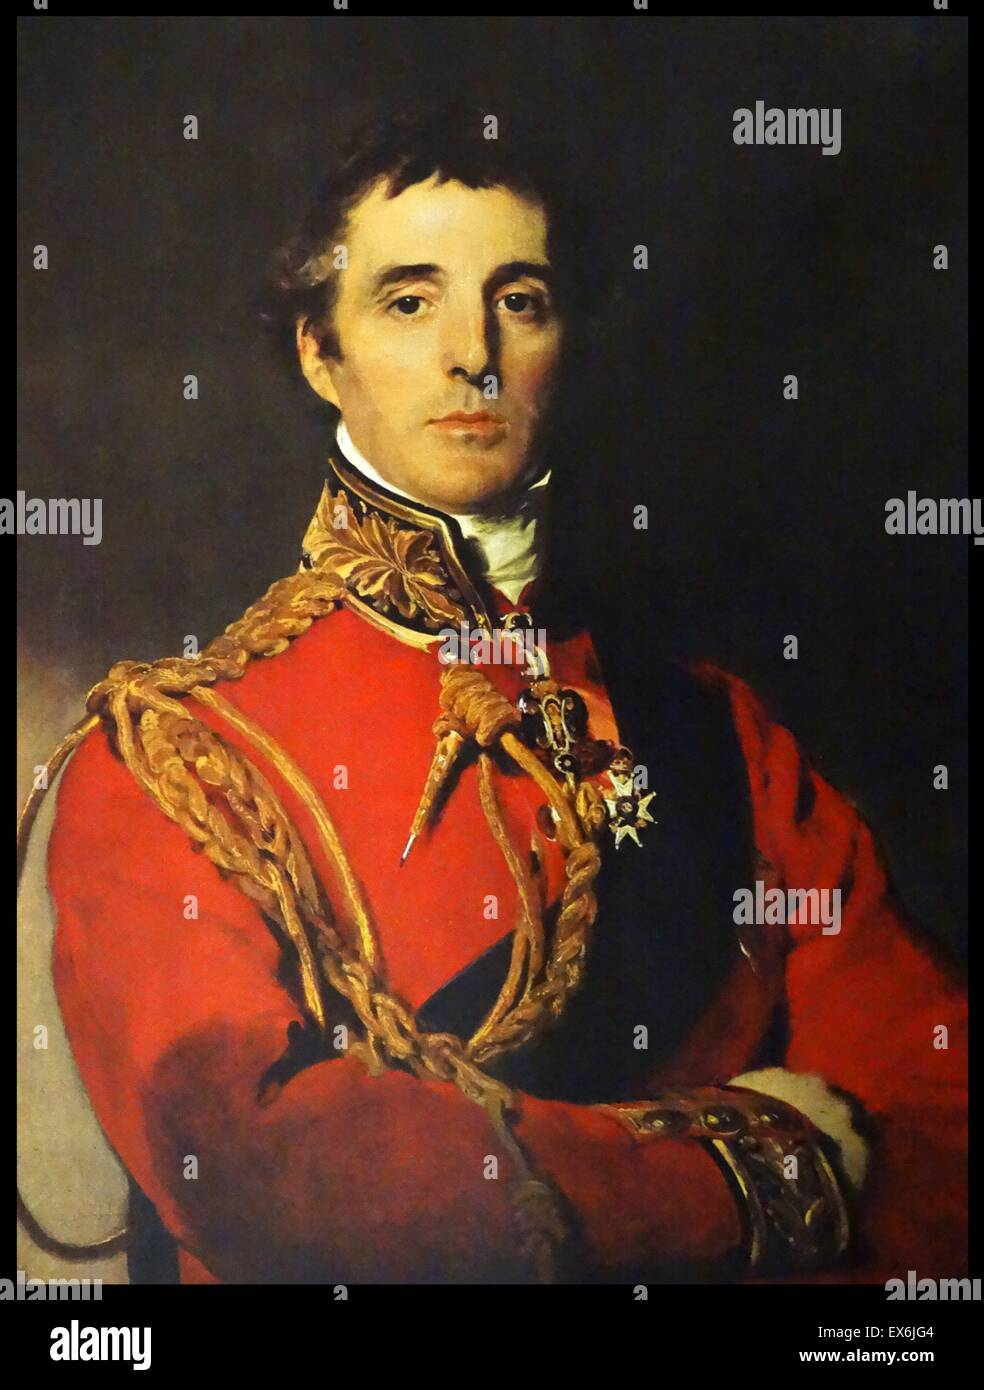 The Duke of Wellington, by Lawrence. From The Island Race, a 20th century book that covers the history of the British - Stock Image